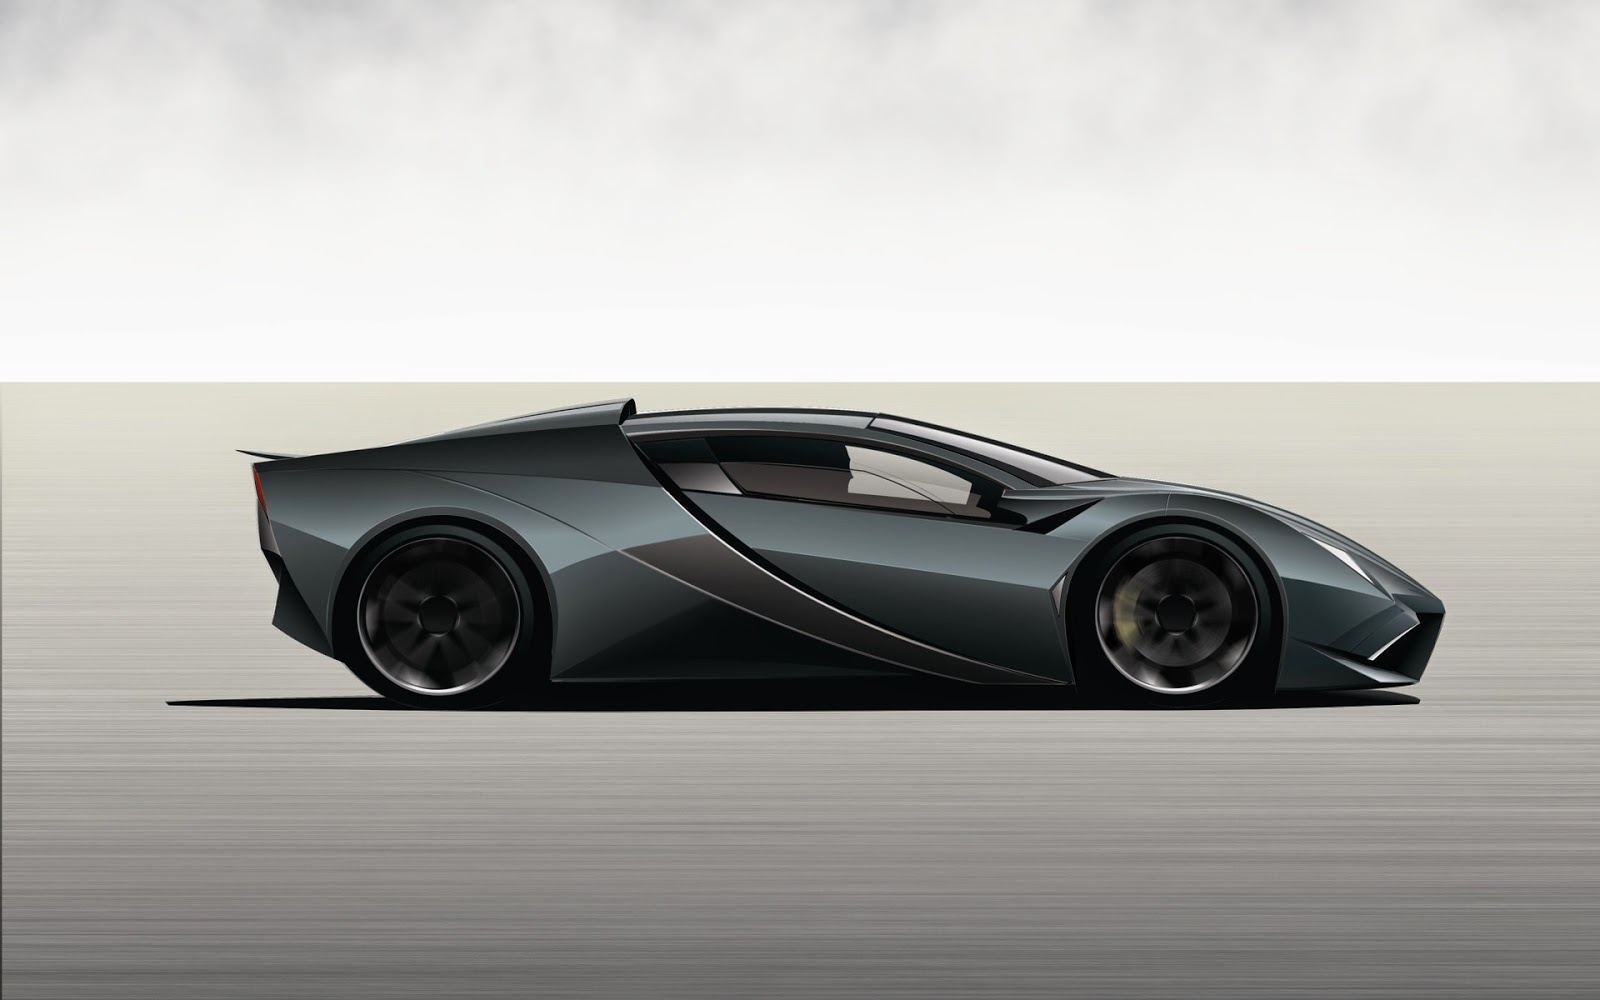 Amazing Hd Wallpapers Download High Resolution Wallpapers Of - Amazing cool cars